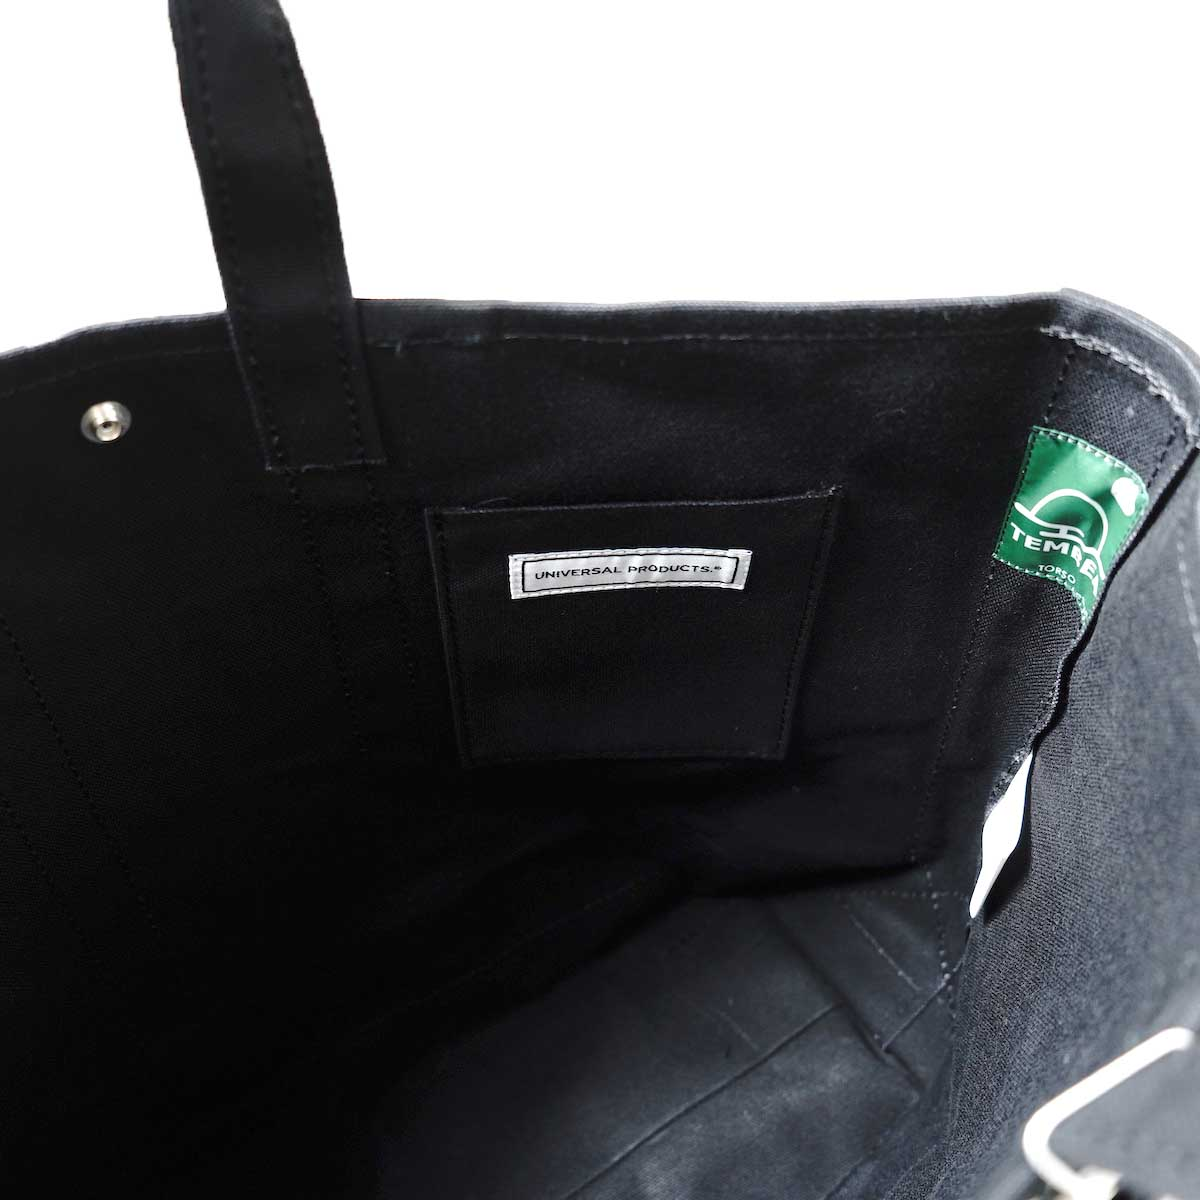 UNIVERSAL PRODUCTS / TEMBEA MARKET TOTE 内ポケット